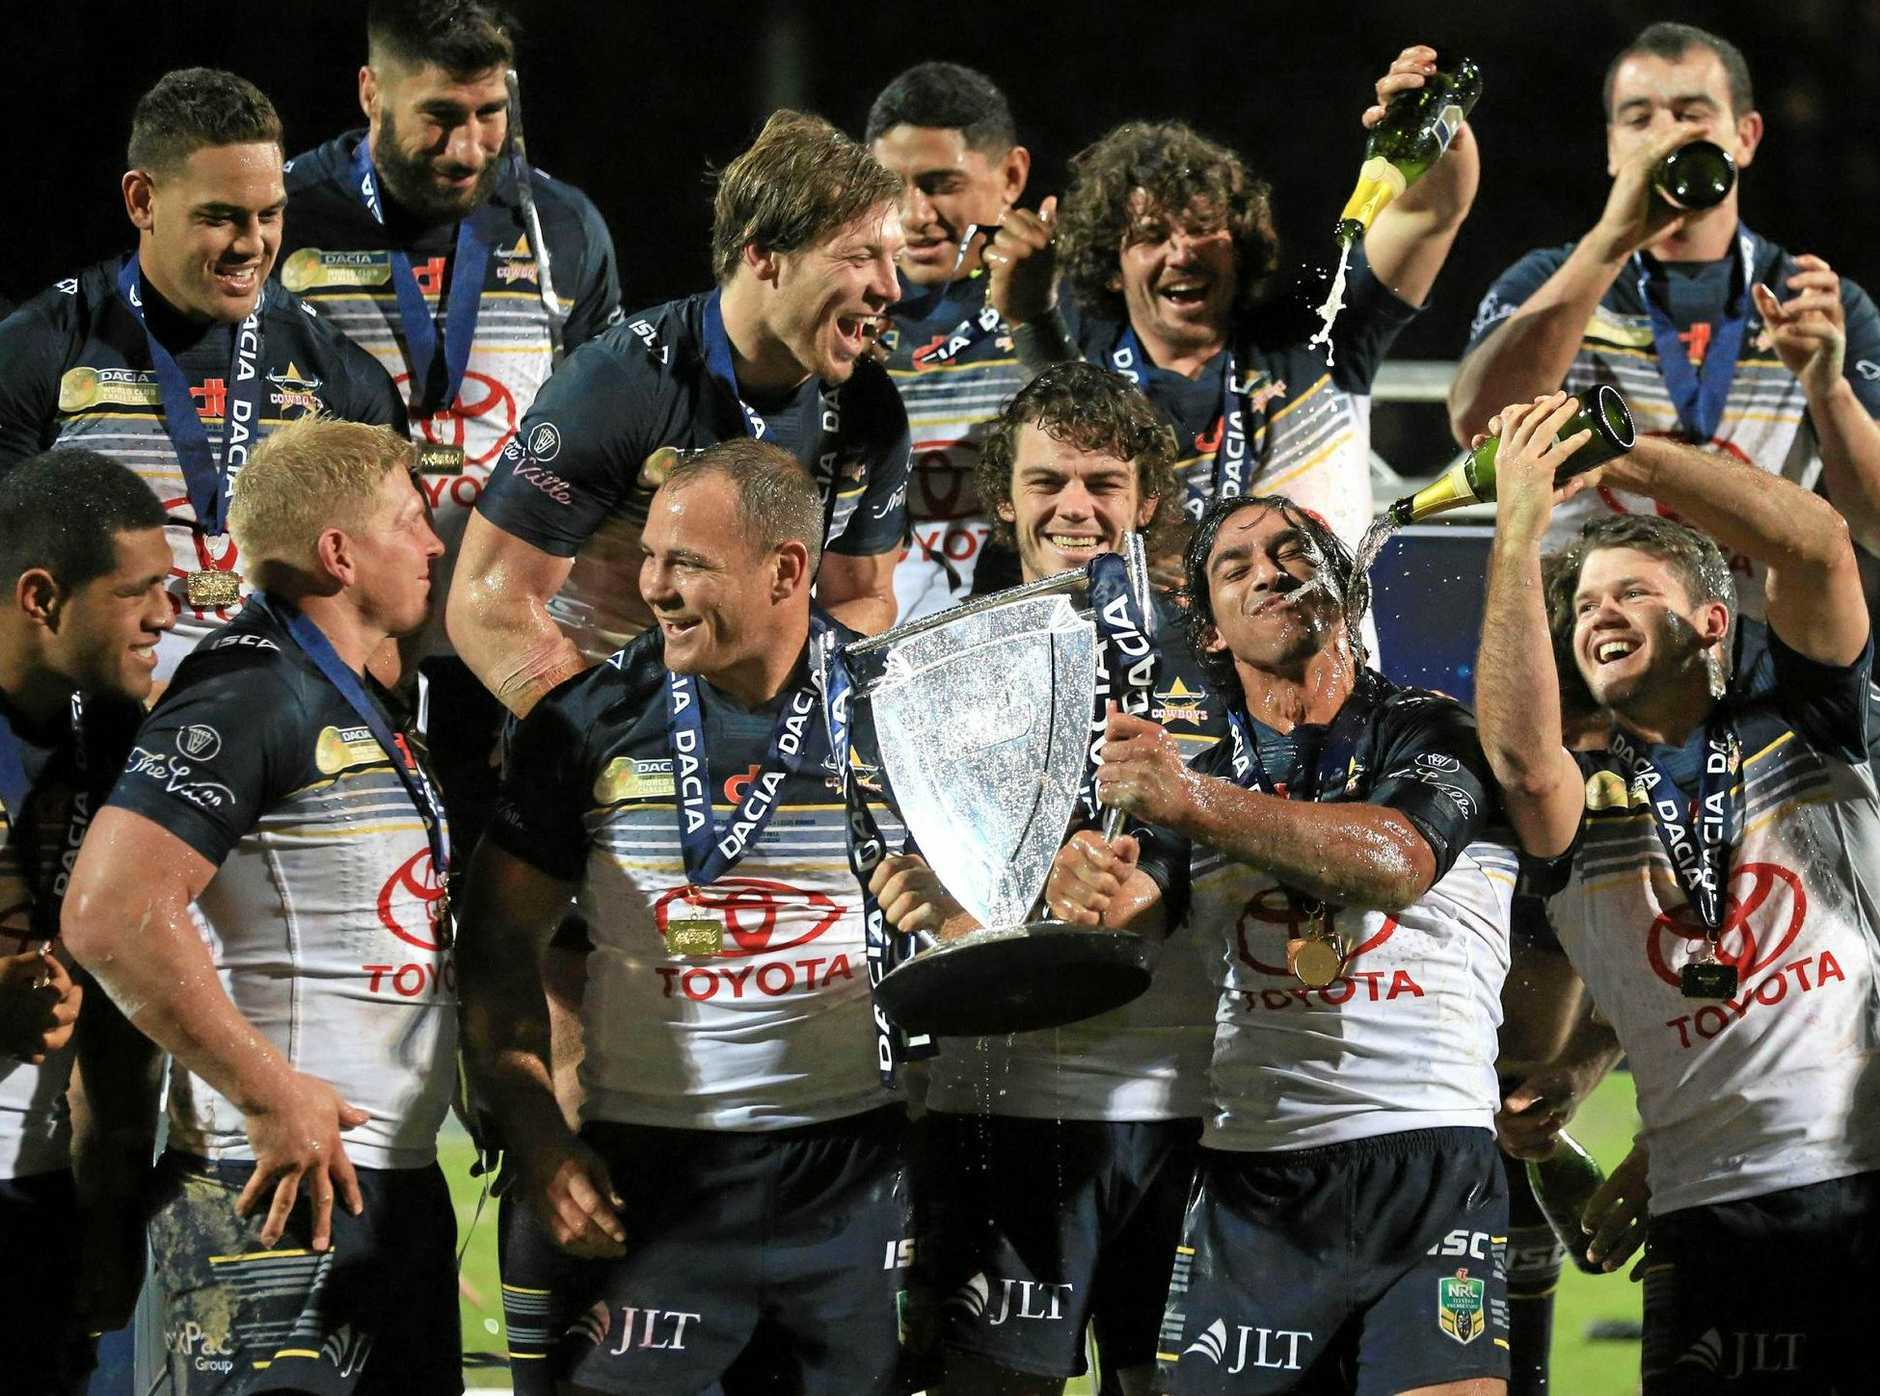 WORLD'S BEST: The North Queensland Cowboys celebrate after defeating the Leeds Rhinos 38-4 in last year's World Club Series.